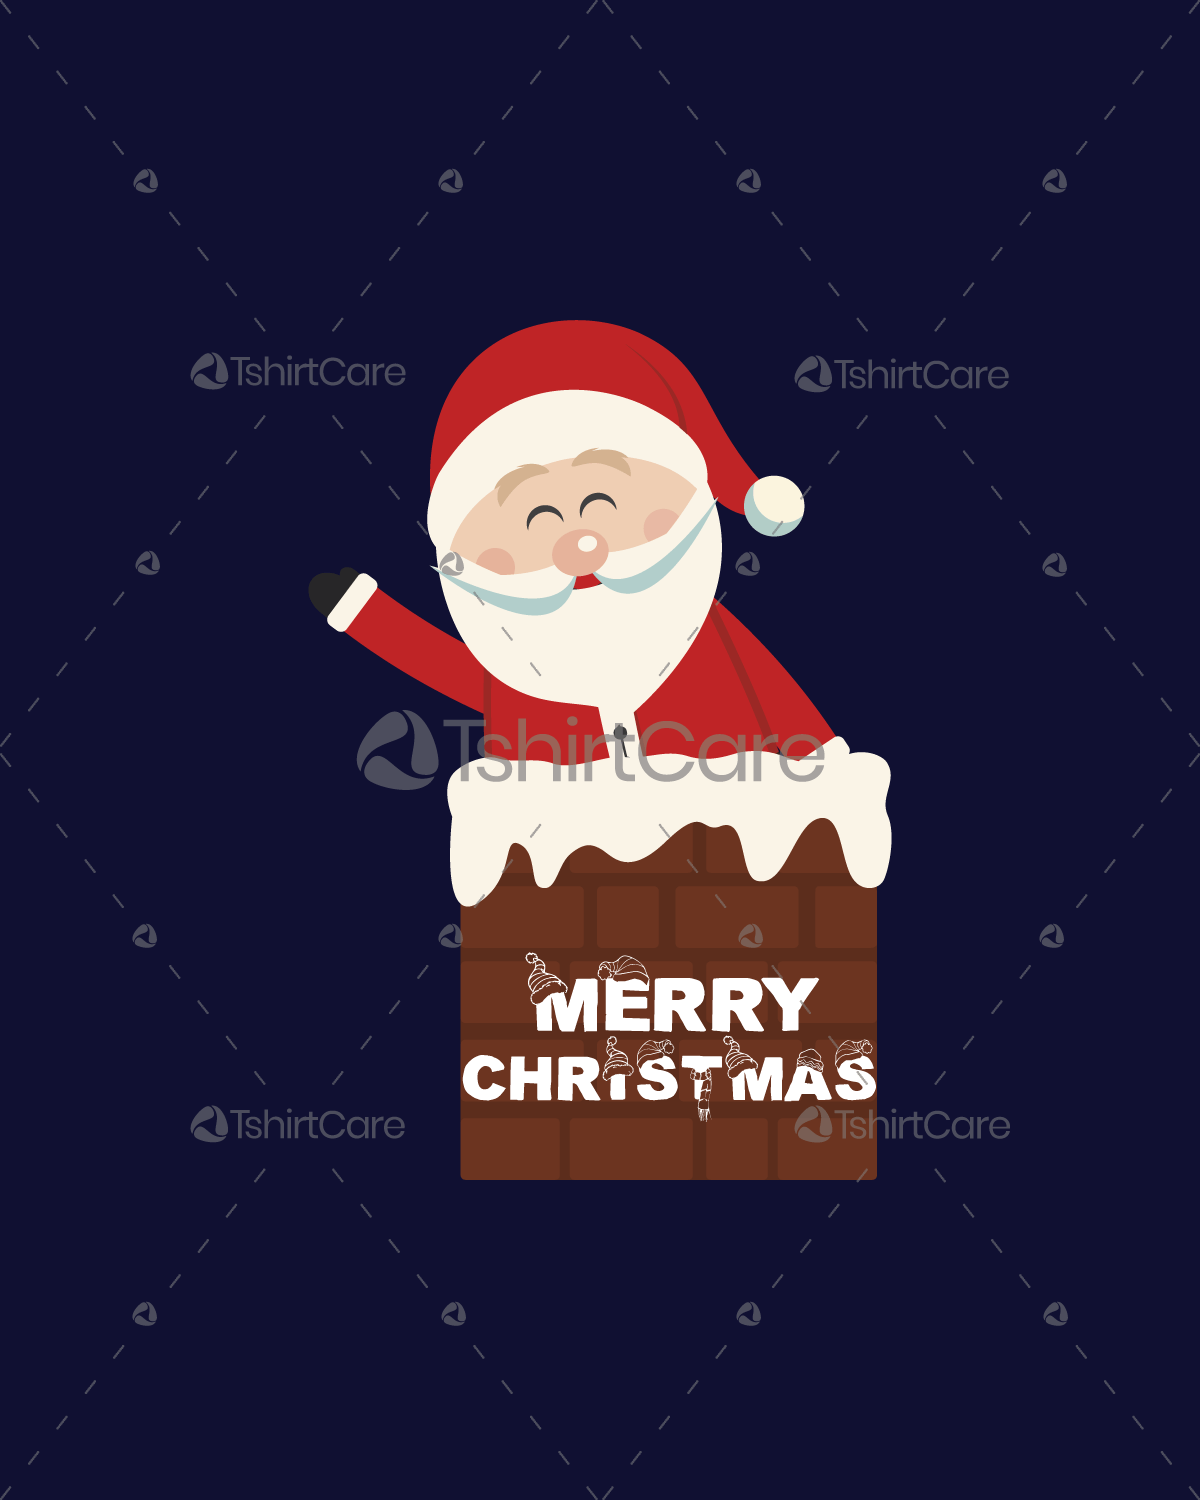 Funny Merry Christmas.Funny Merry Christmas T Shirt Design Holiday Shirt Design Idea For Party T Shirts Tshirtcare